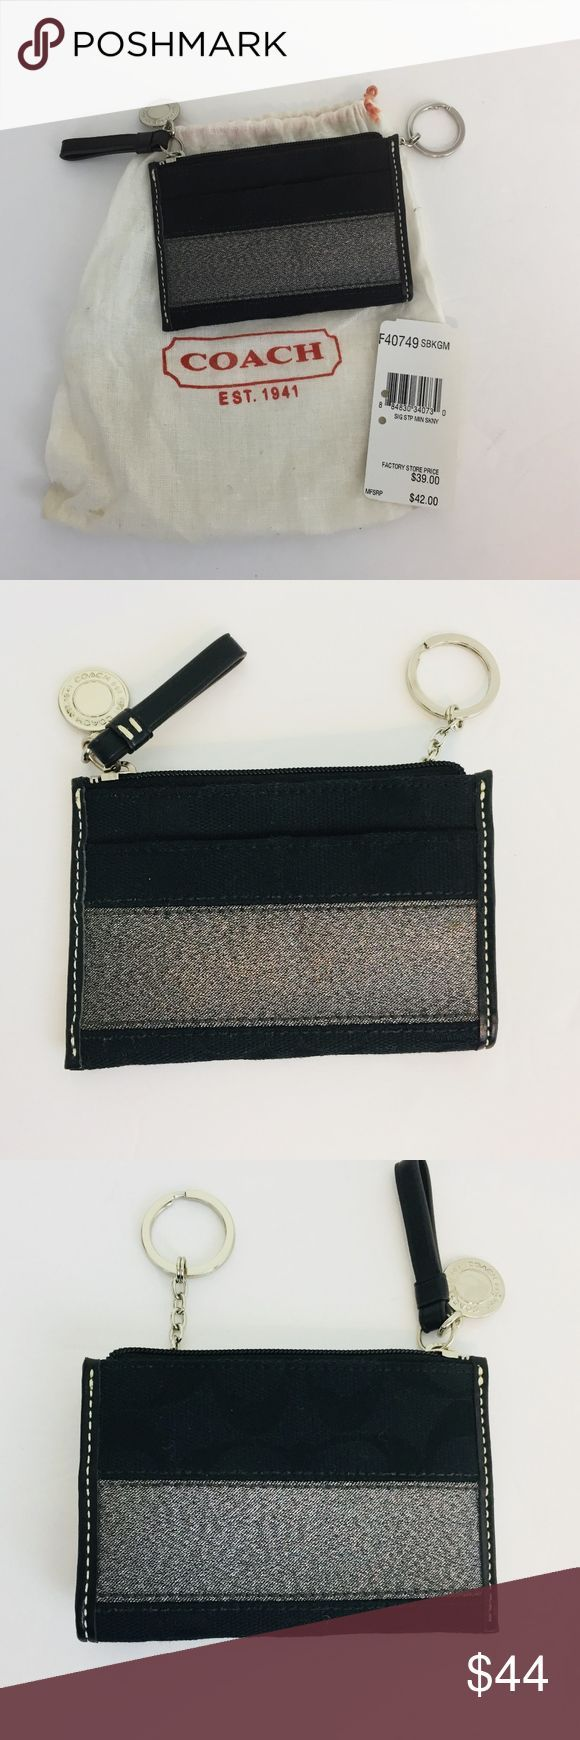 Coach Mini Skinny Coin Purse Q1 Coach Mini Skinny Coin